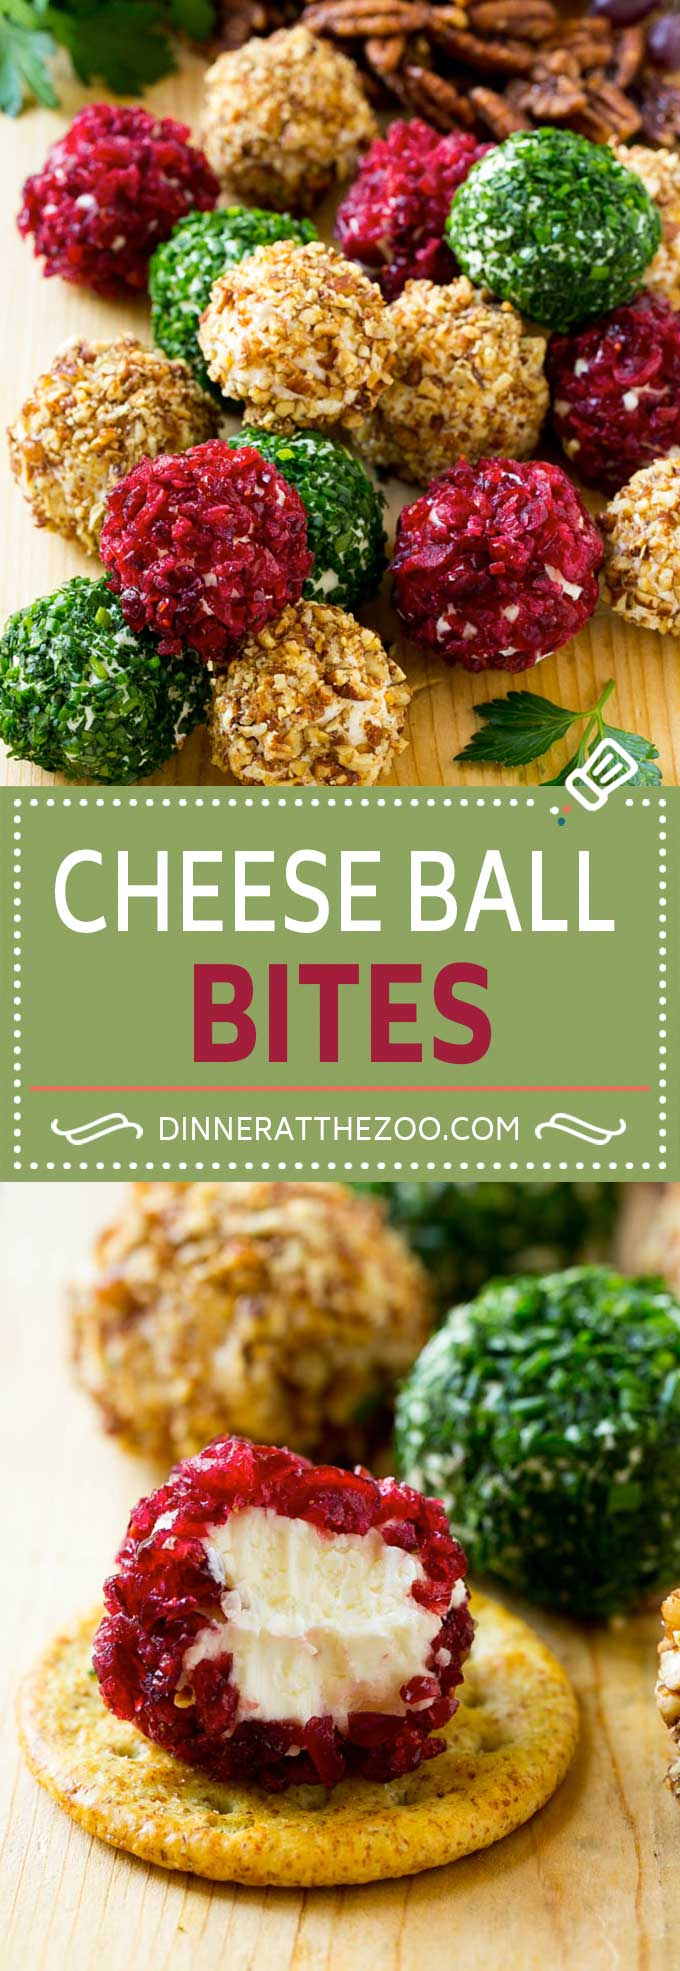 Cheese Ball Bites Recipe | Holiday Cheese Ball Recipe | Pecan Cheese Ball | Cranberry Cheese Ball | Mini Cheese Balls #cheeseball #cheese #appetizer #dinneratthezoo